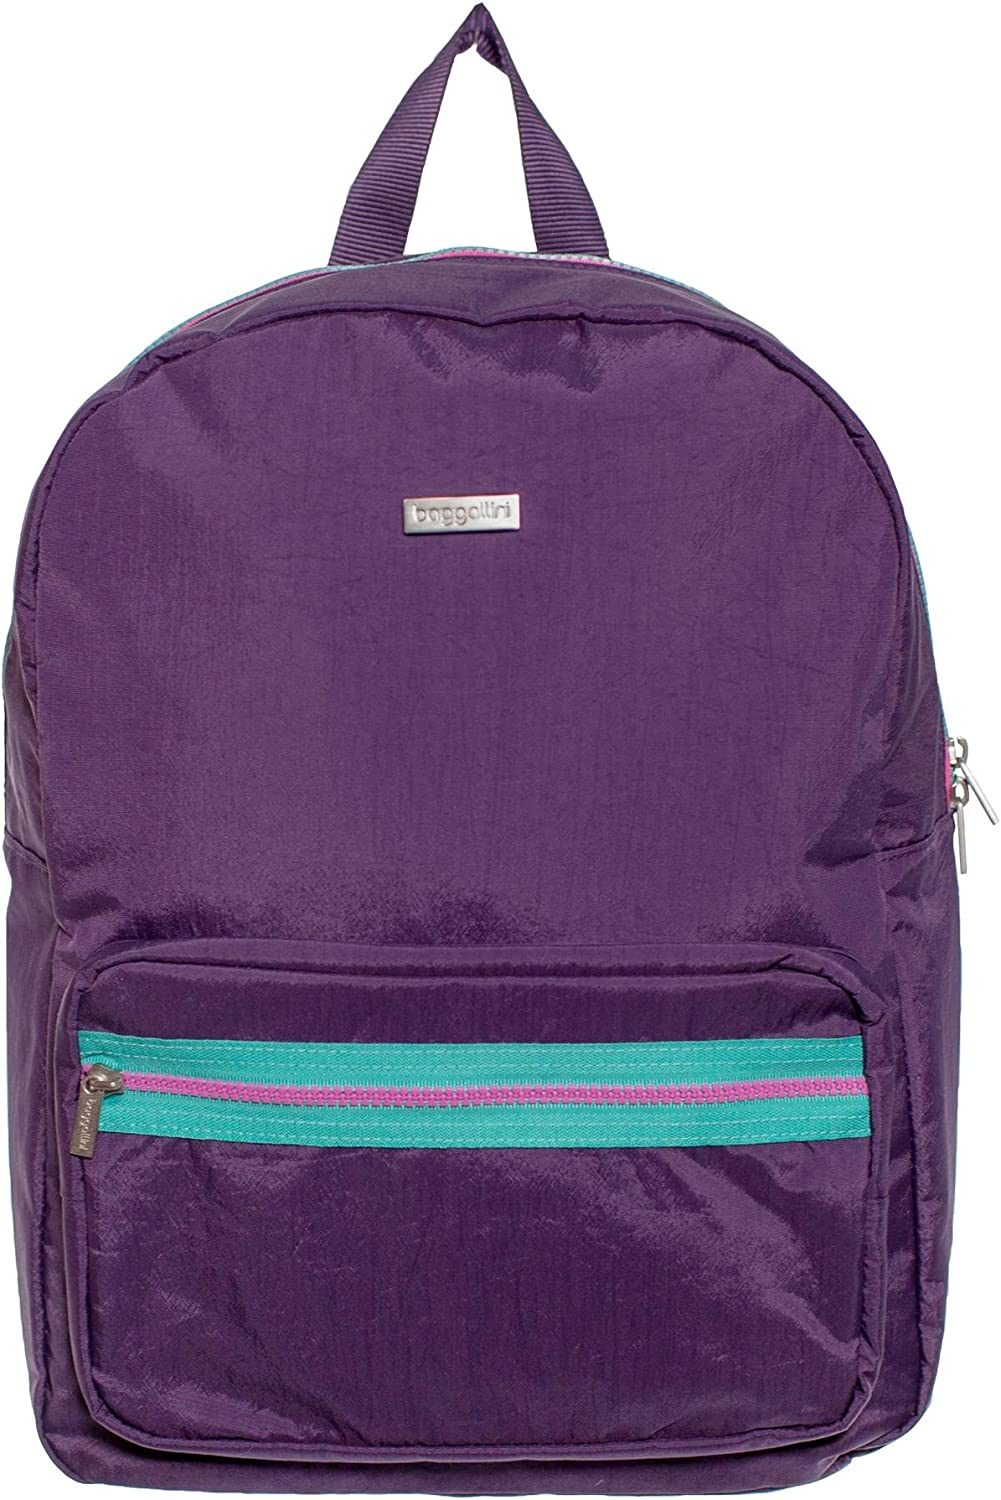 Baggallini Arches Backpack Purple Two pocket with Laptop Compartment Backpack